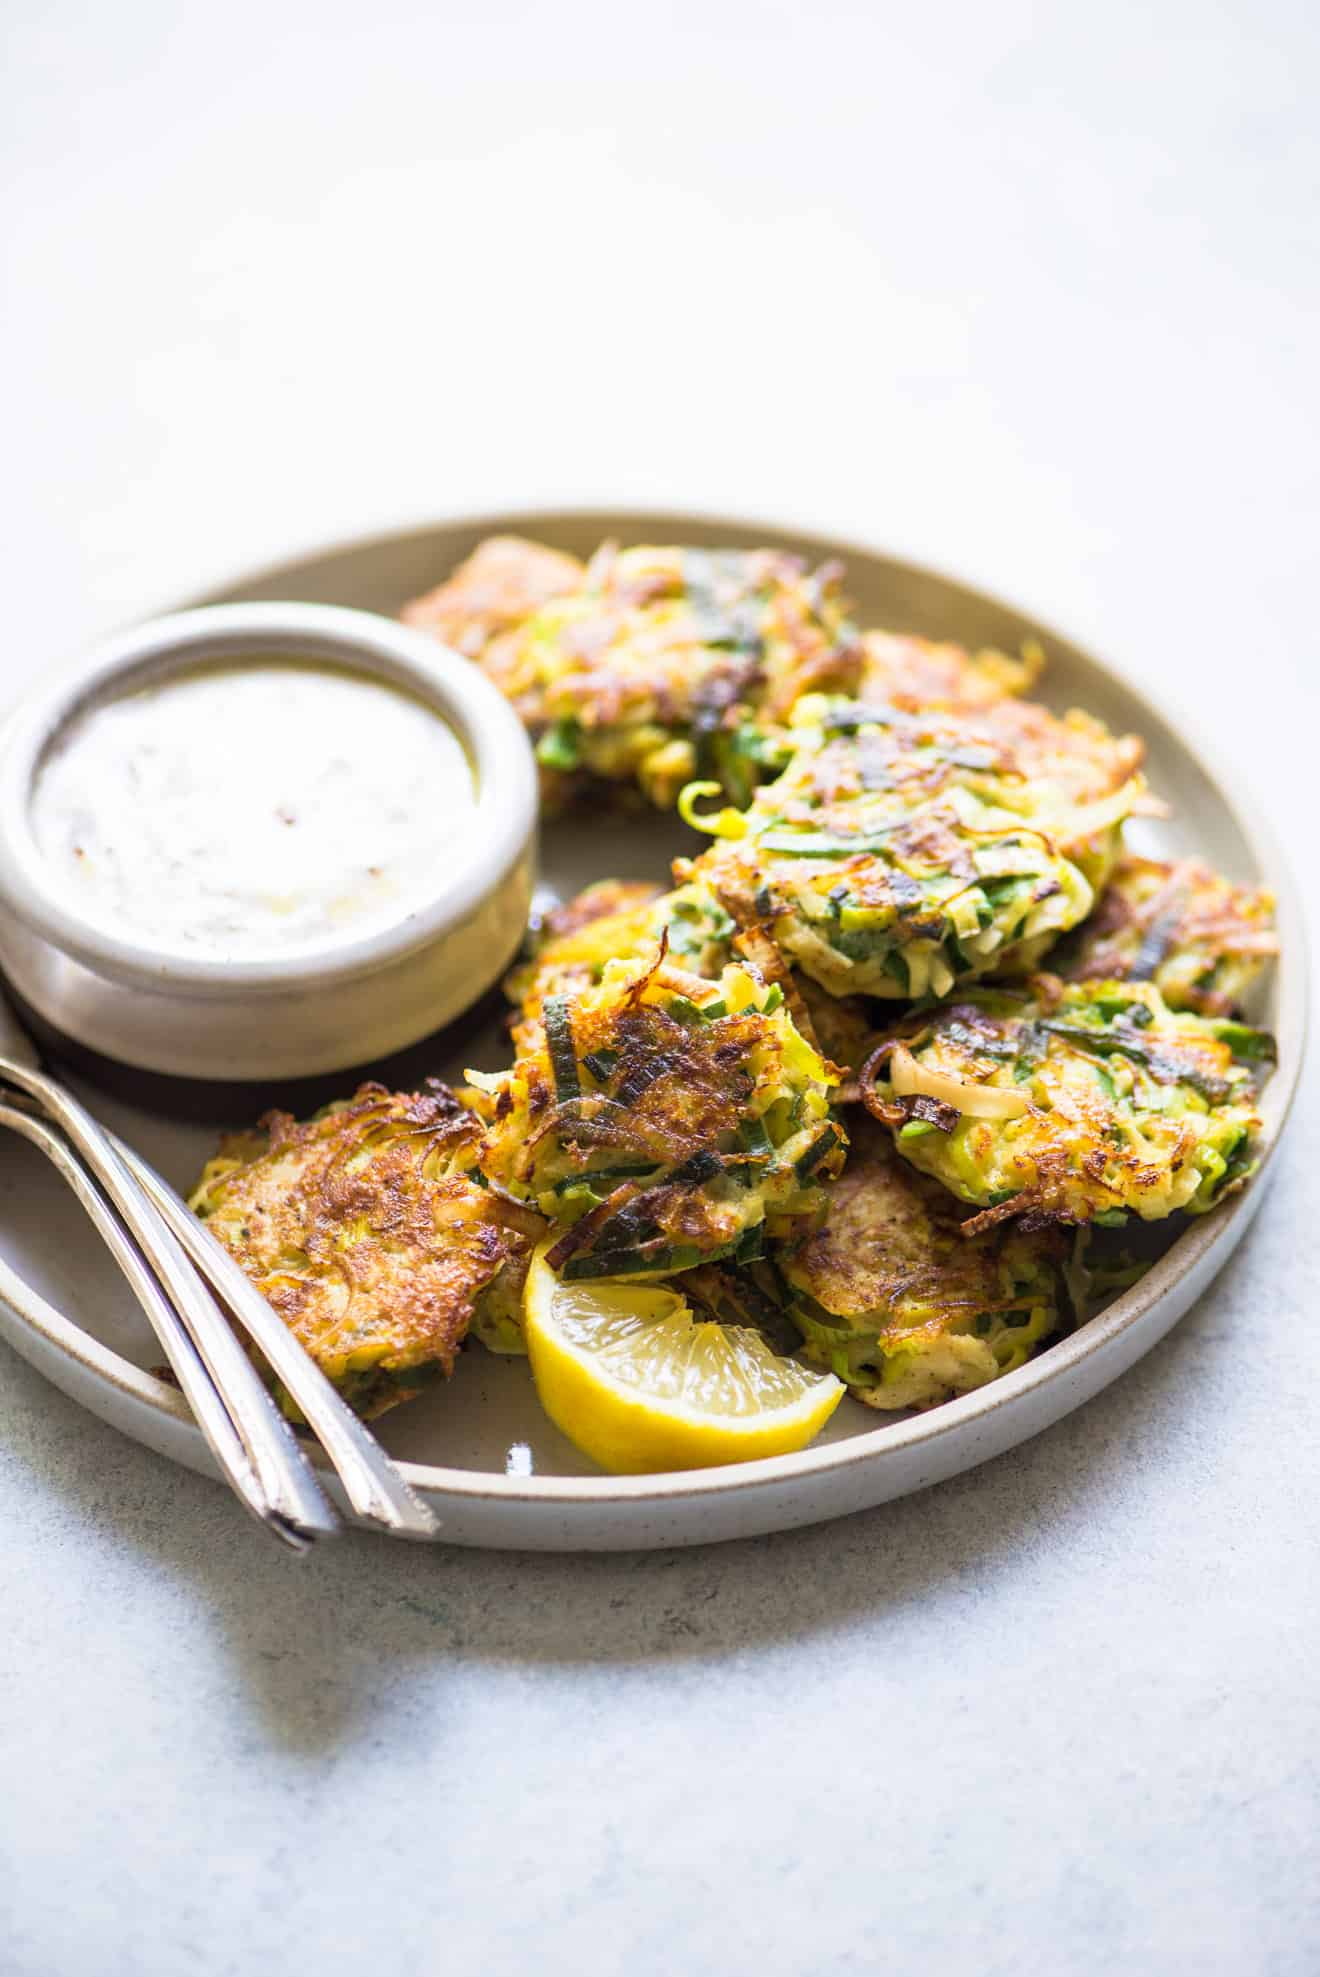 Leek and Kohlrabi Fritters with Sumac Yogurt - simple fritters that are great for an appetizer!